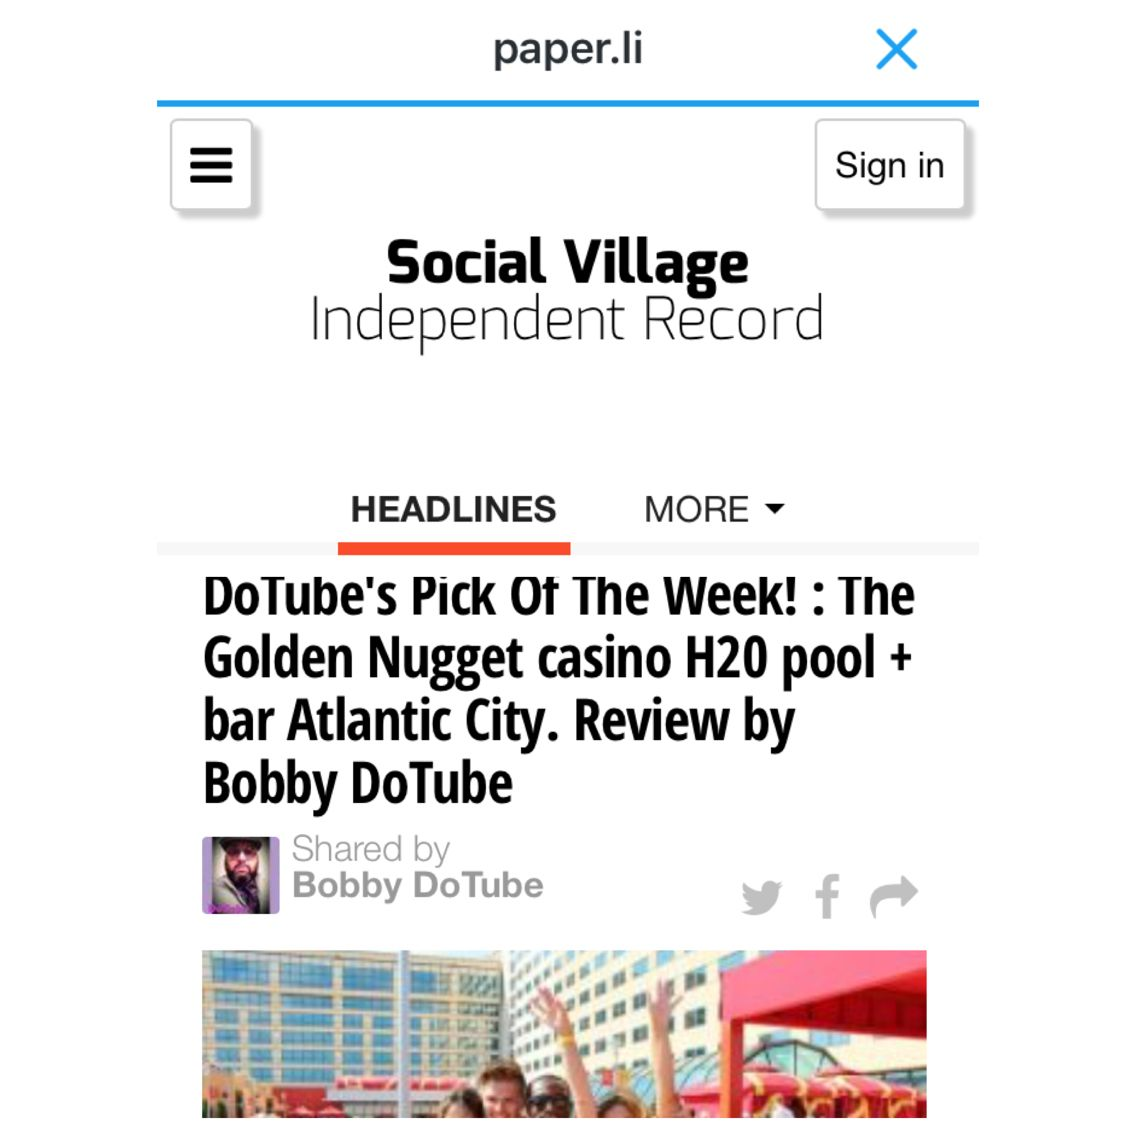 Front page for my review of the pool party at the Golden Nugget Atlantic City